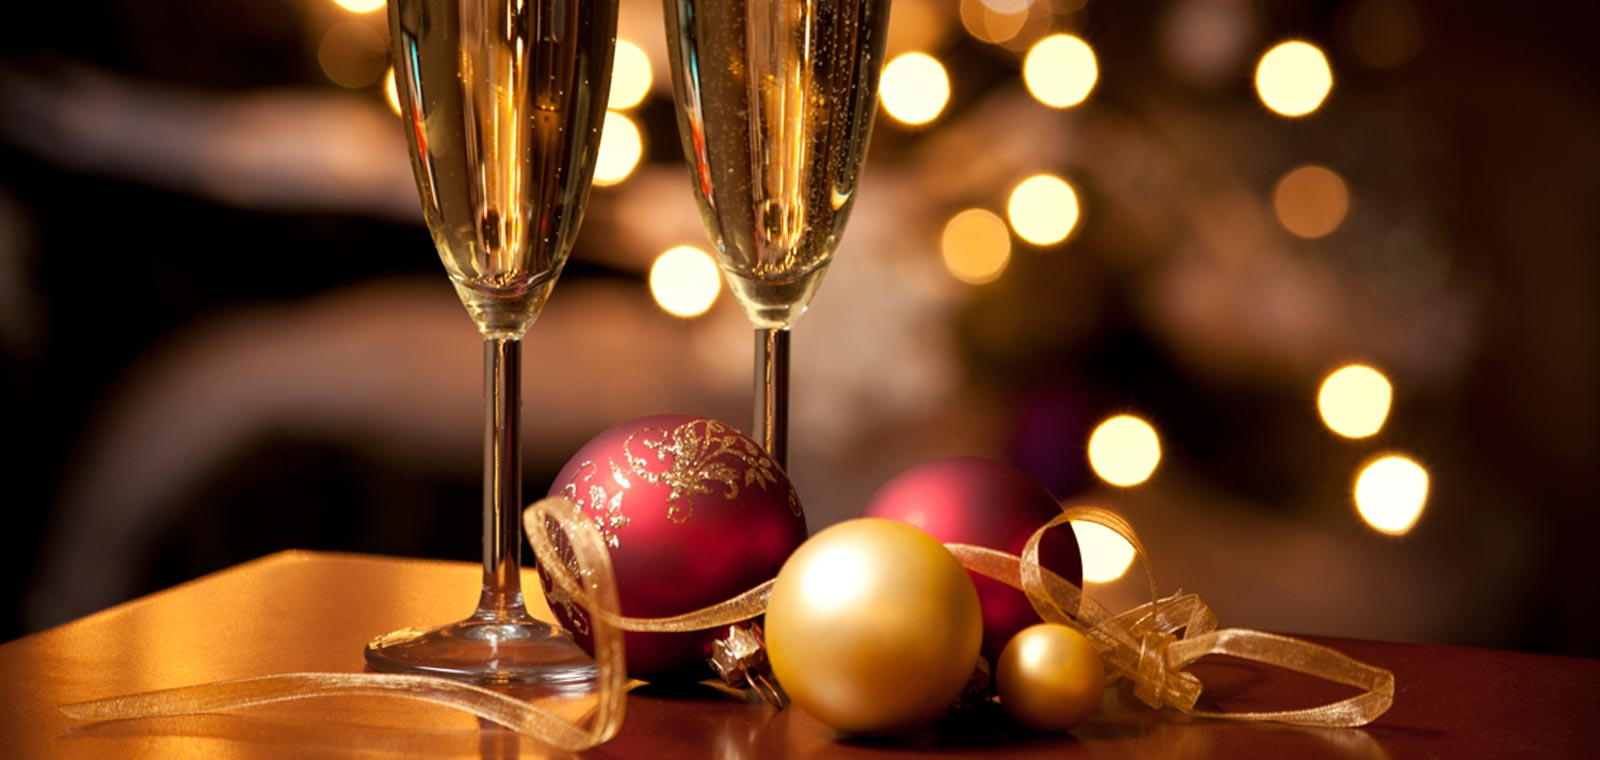 holiday-party-options-available-at-st-charles-resort-top.jpg